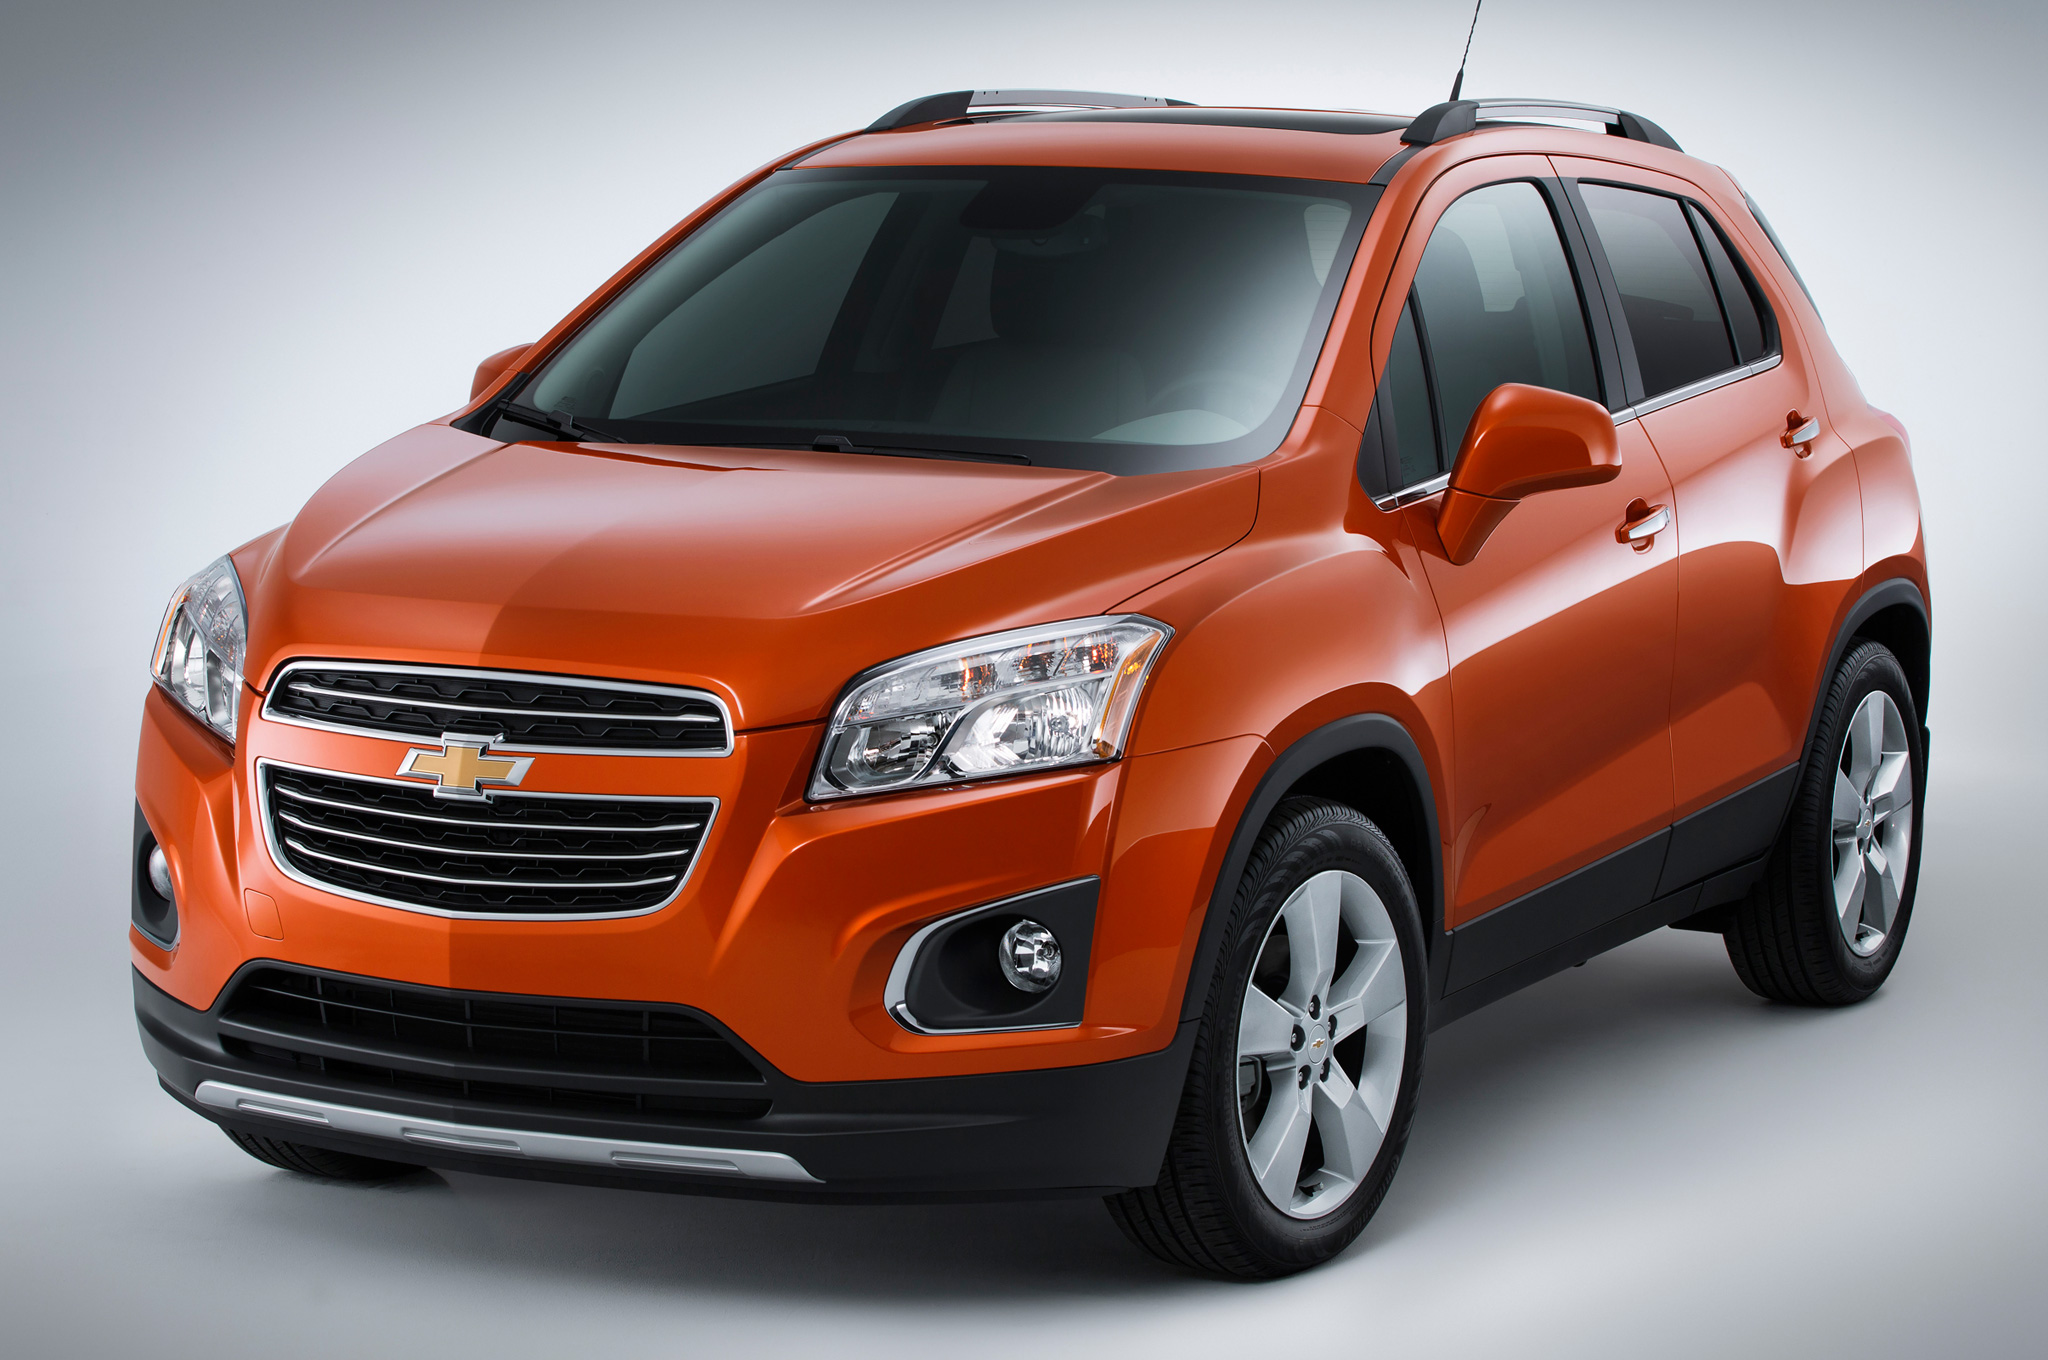 2015 Chevrolet Trax Front End